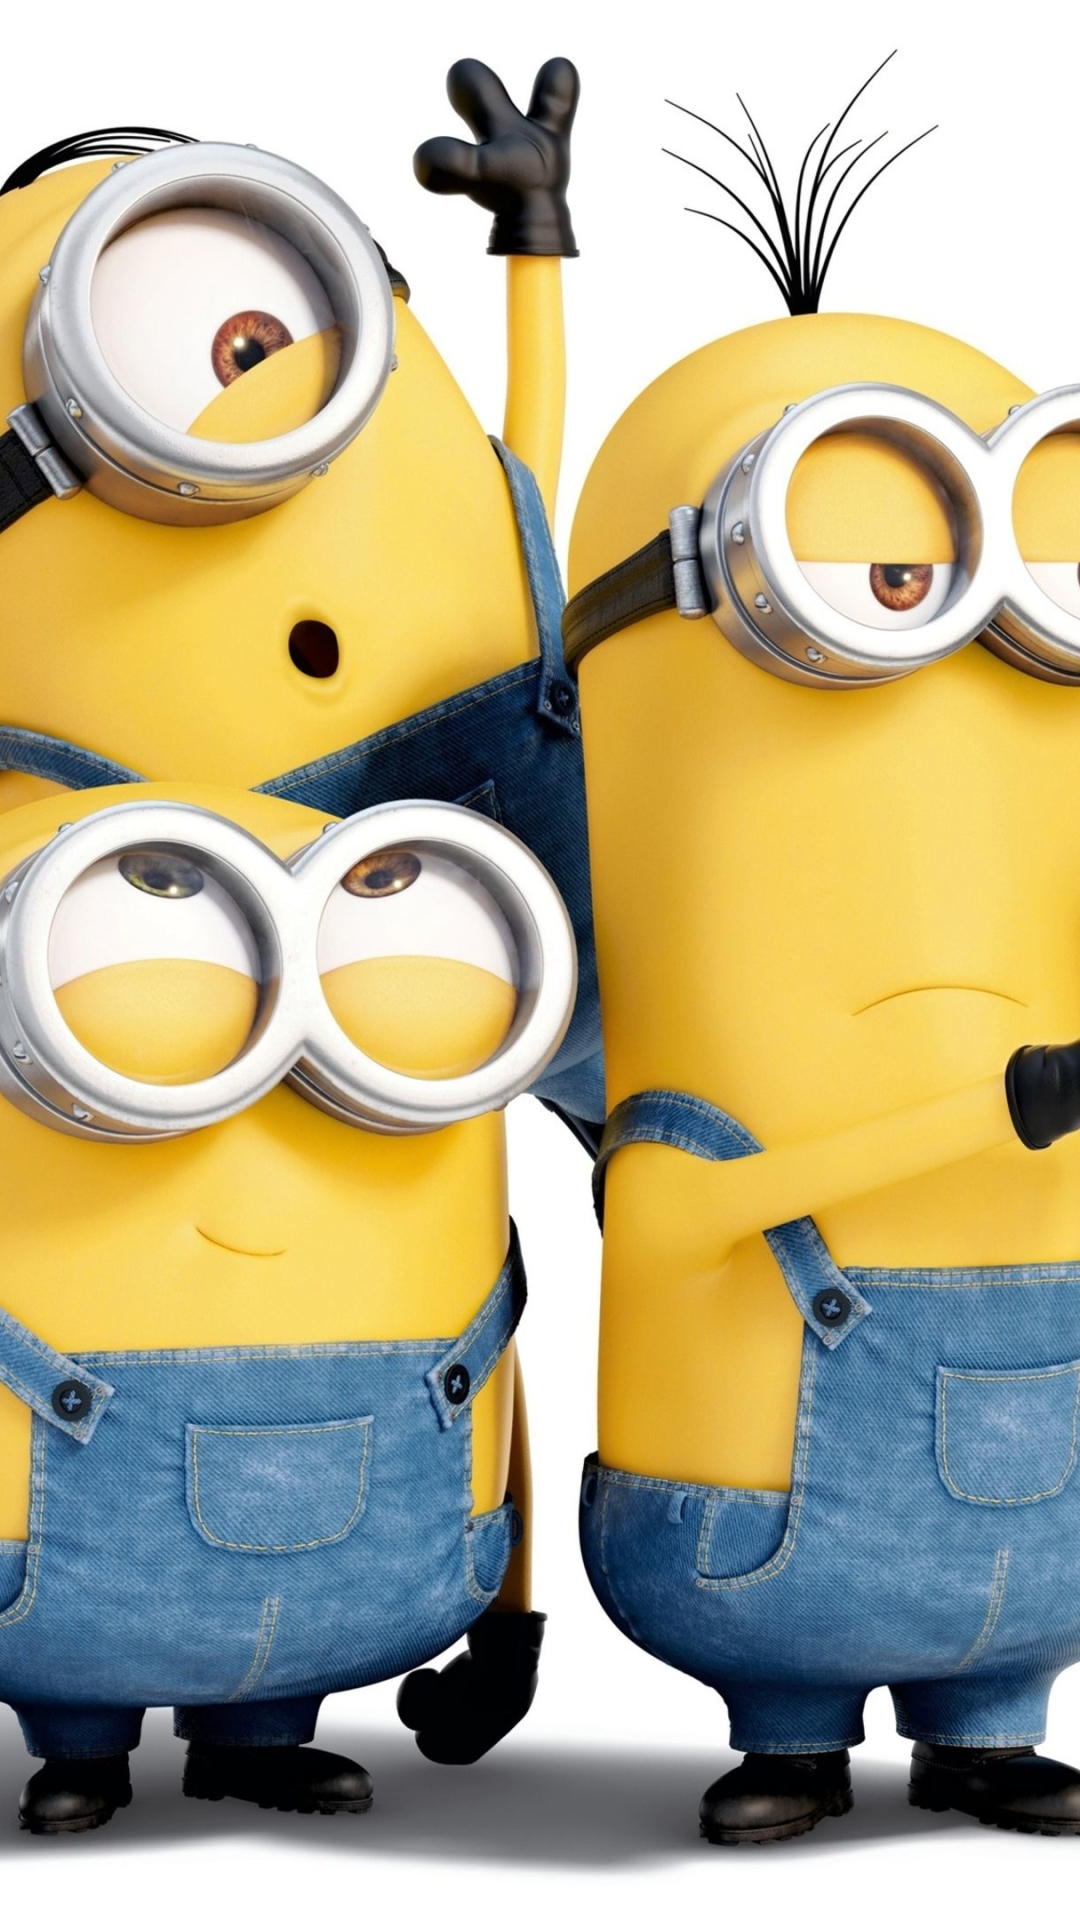 3d Windows Phone Wallpaper Lumia 630 635 Movie Minions Wallpaper Id 594092